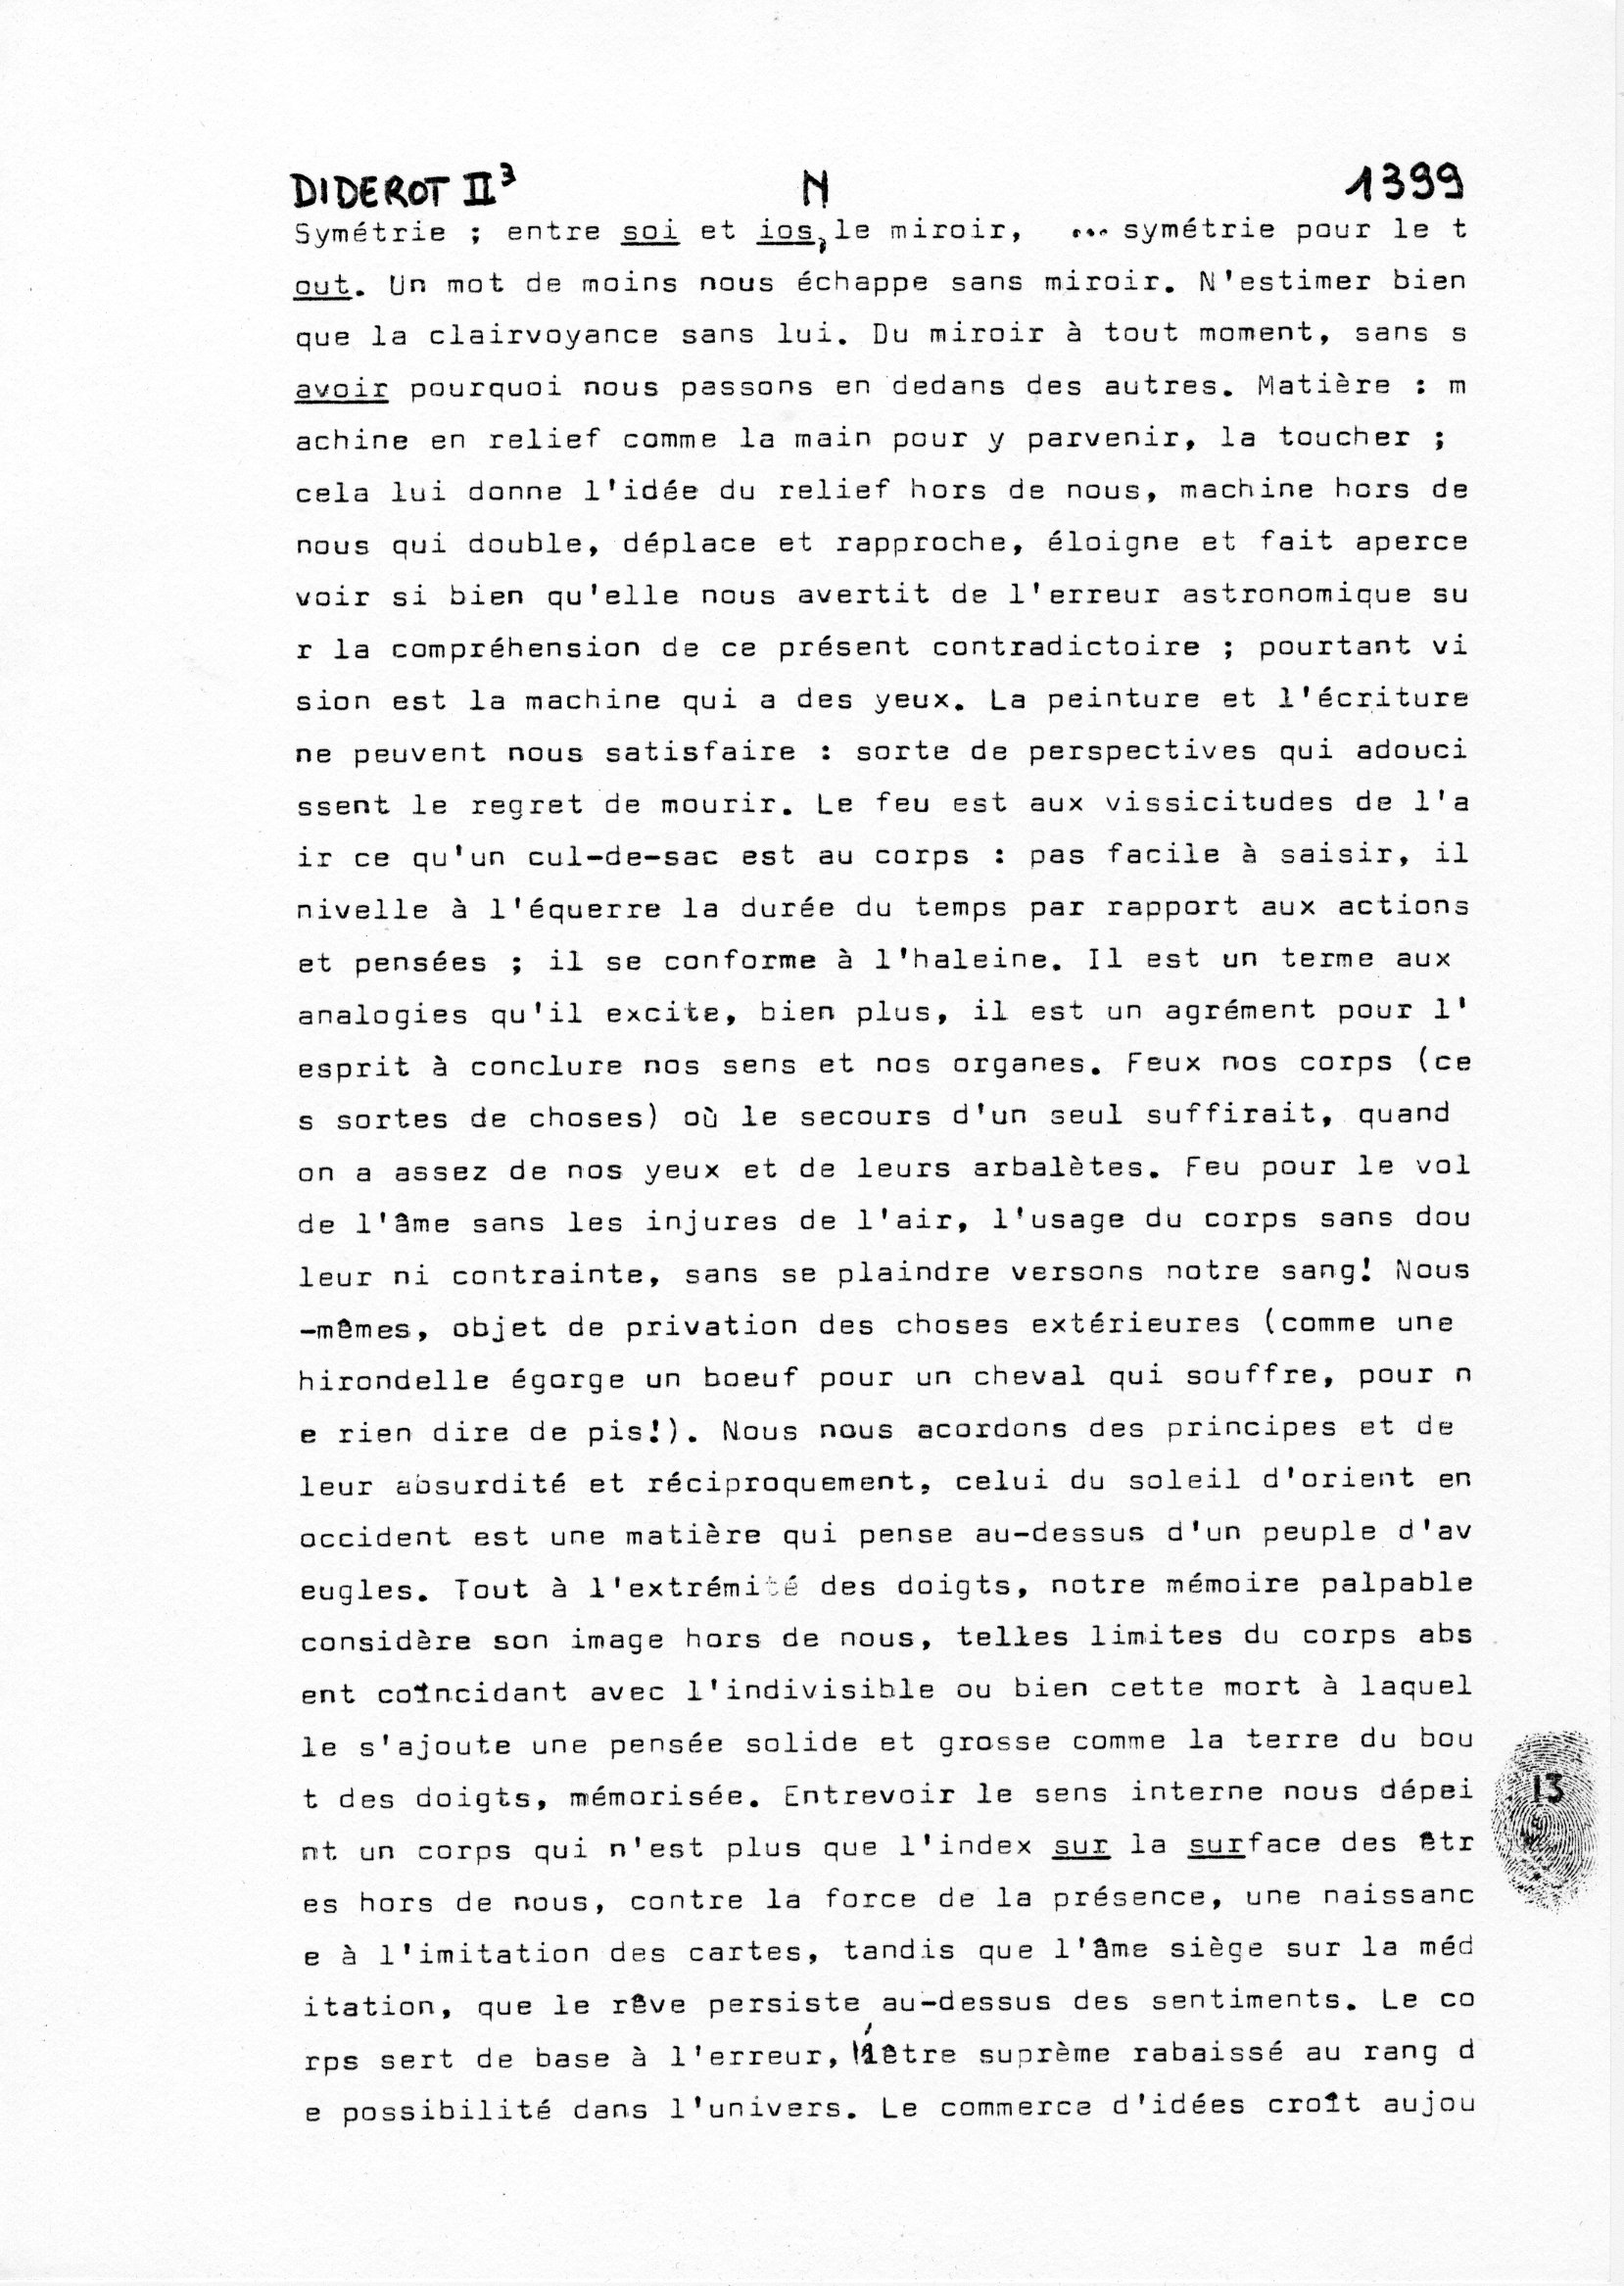 page 1399 Diderot II p3 N